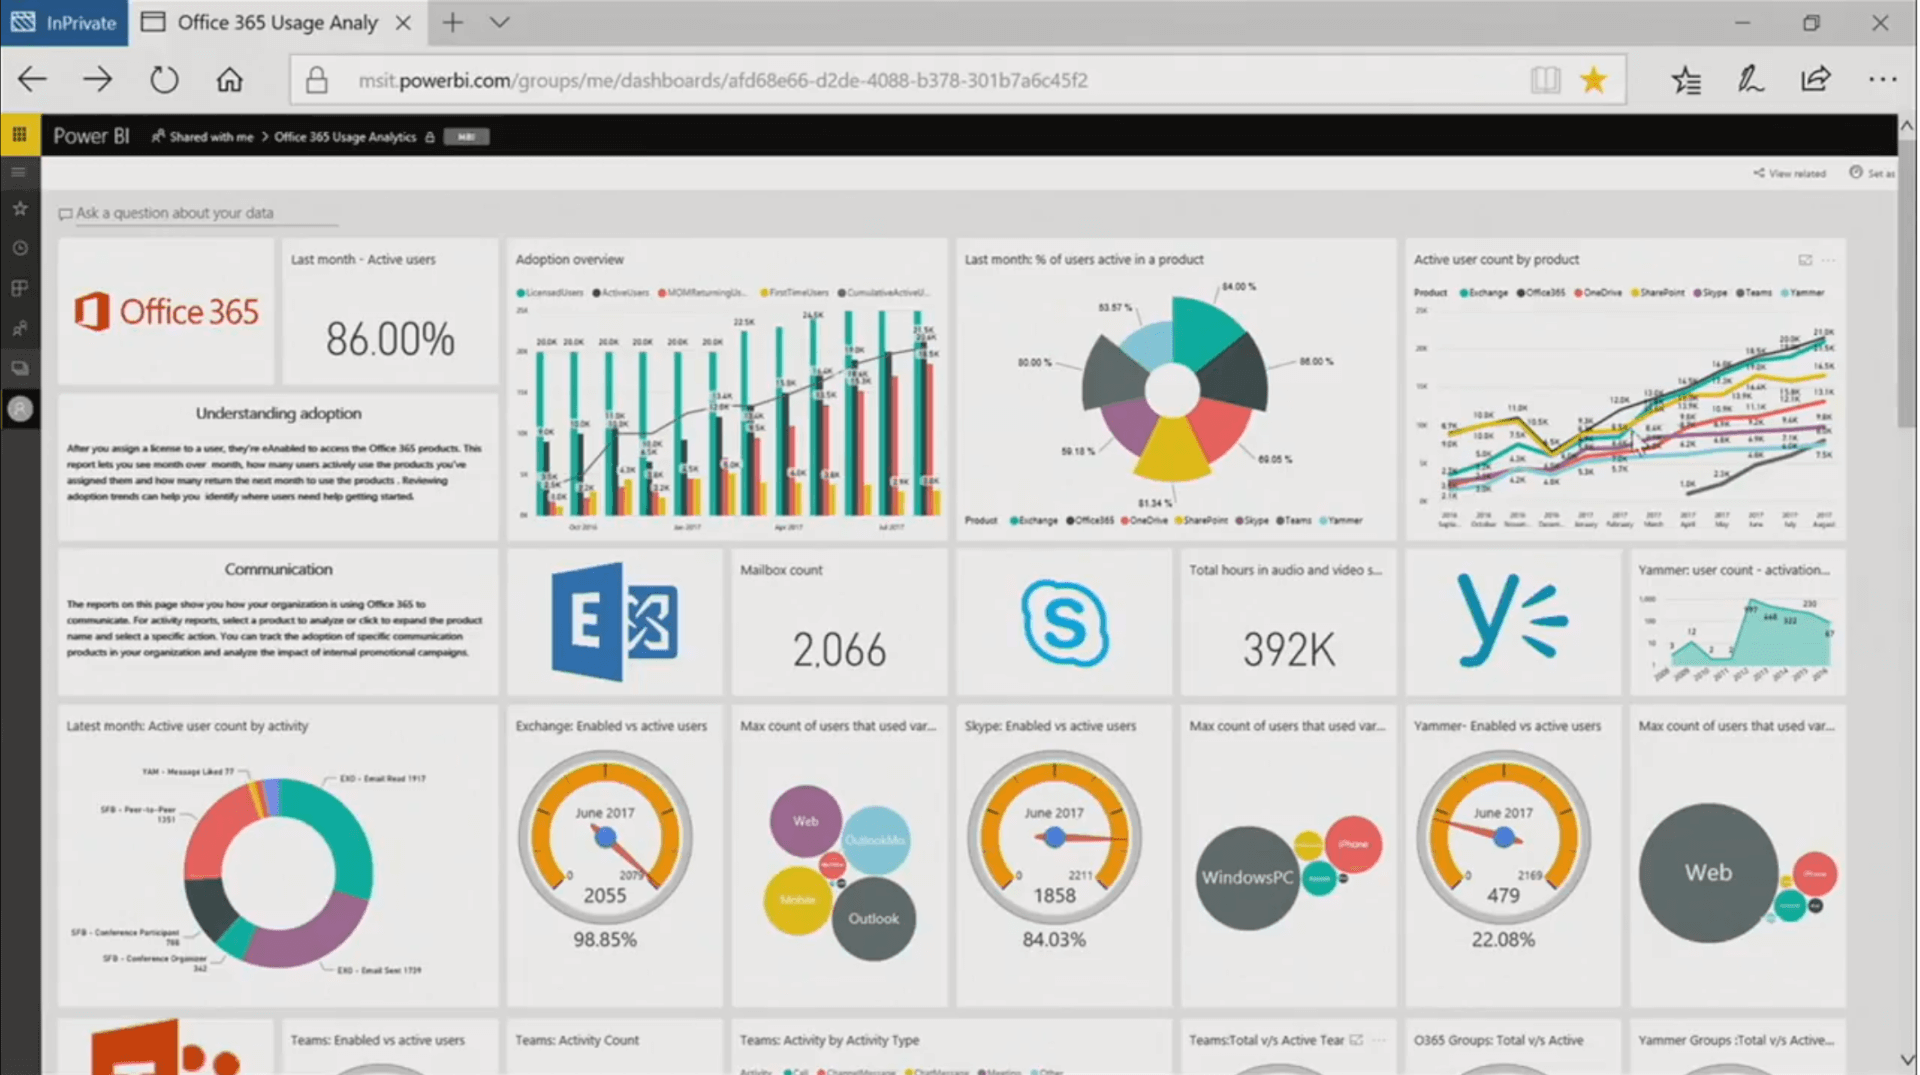 Texte de remplacement généré par une machine: lnPrivate Power BI Office 365 Usage Analyx + v CD msit powerbi.com/groups/me/dashboards/afd68e66QdeA08%378-301b7a6c45f2 Ask a Weston about ytxr data Last • Acti-« O Office 365 86000/0 utest use xtn•ty Last active n a ptOOXt users 2017 2055 98.850,6 Tens: Act»ey c•nt 2066 Max cent of ActrRy Actraty Type uses 1858 84.03% rot* 392K Max of WindowsPC vô Actr« leu Actn•e 2017 479 22.08% 0365 rot' v/s Actr« user • Mn uses used Web 90